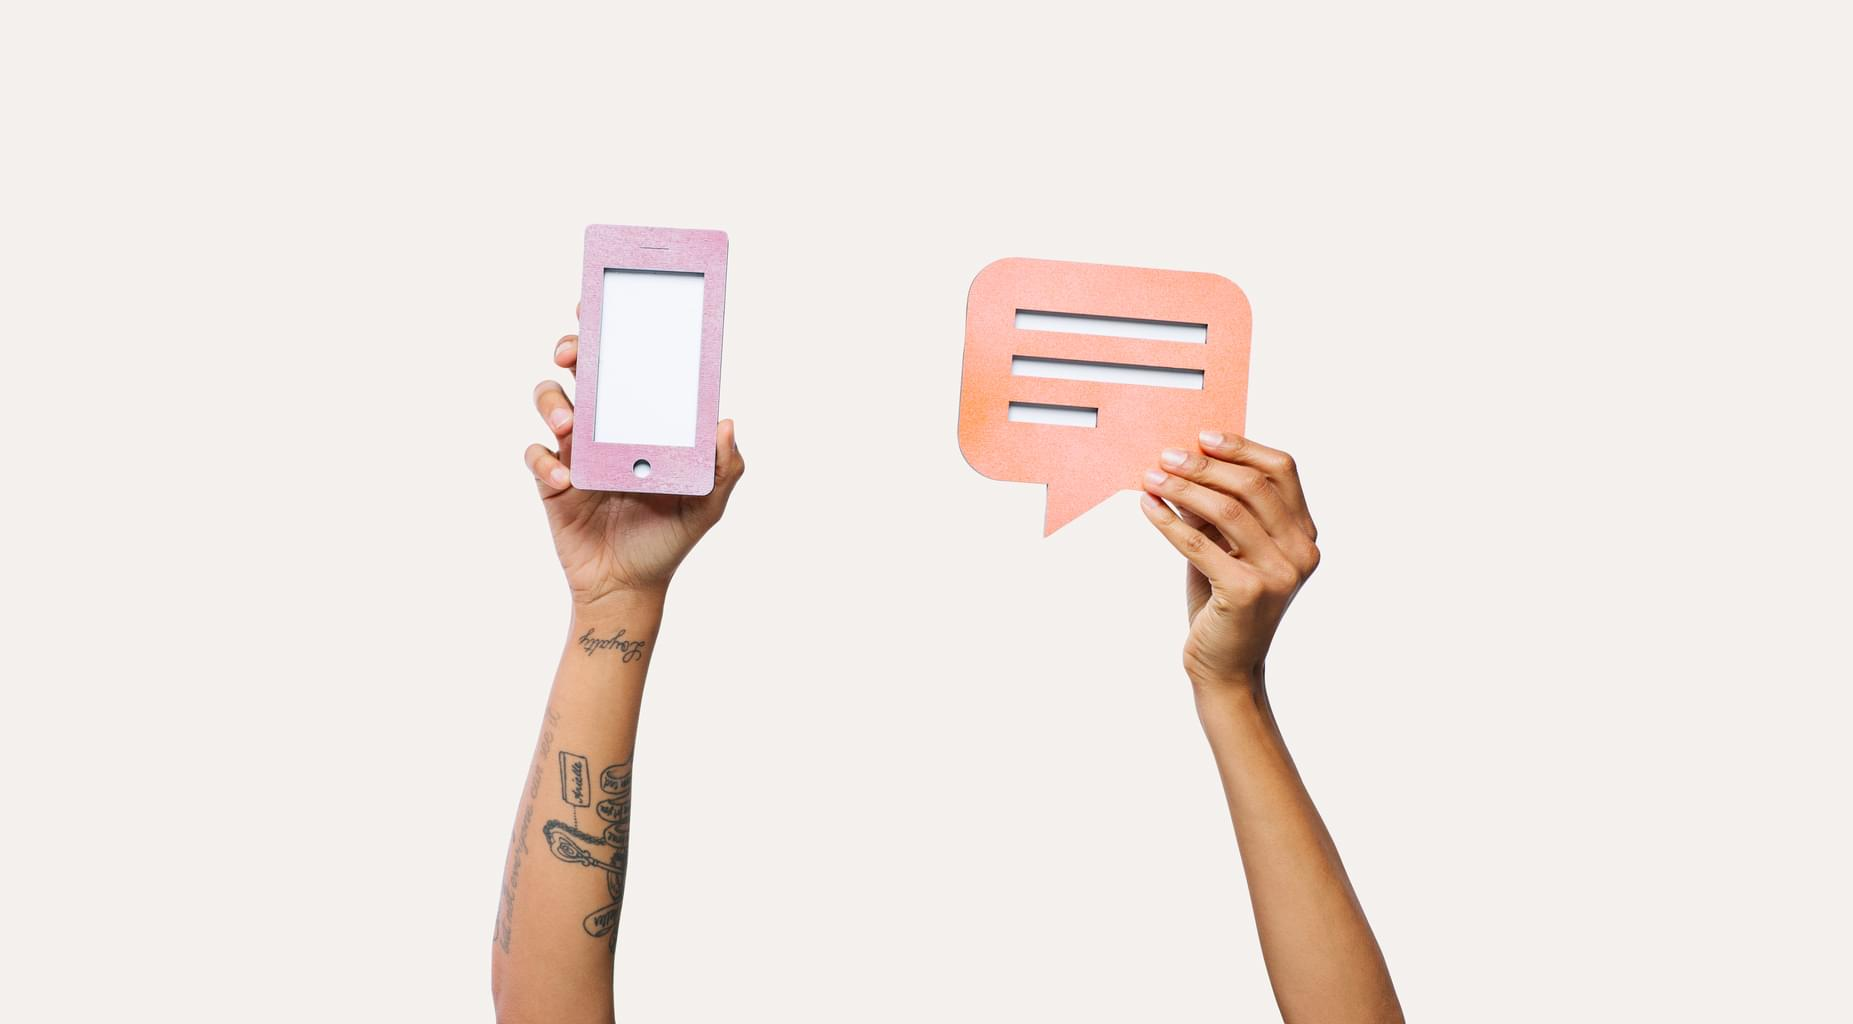 People holding up paper cut-outs of a cell phone and a messaging bubble